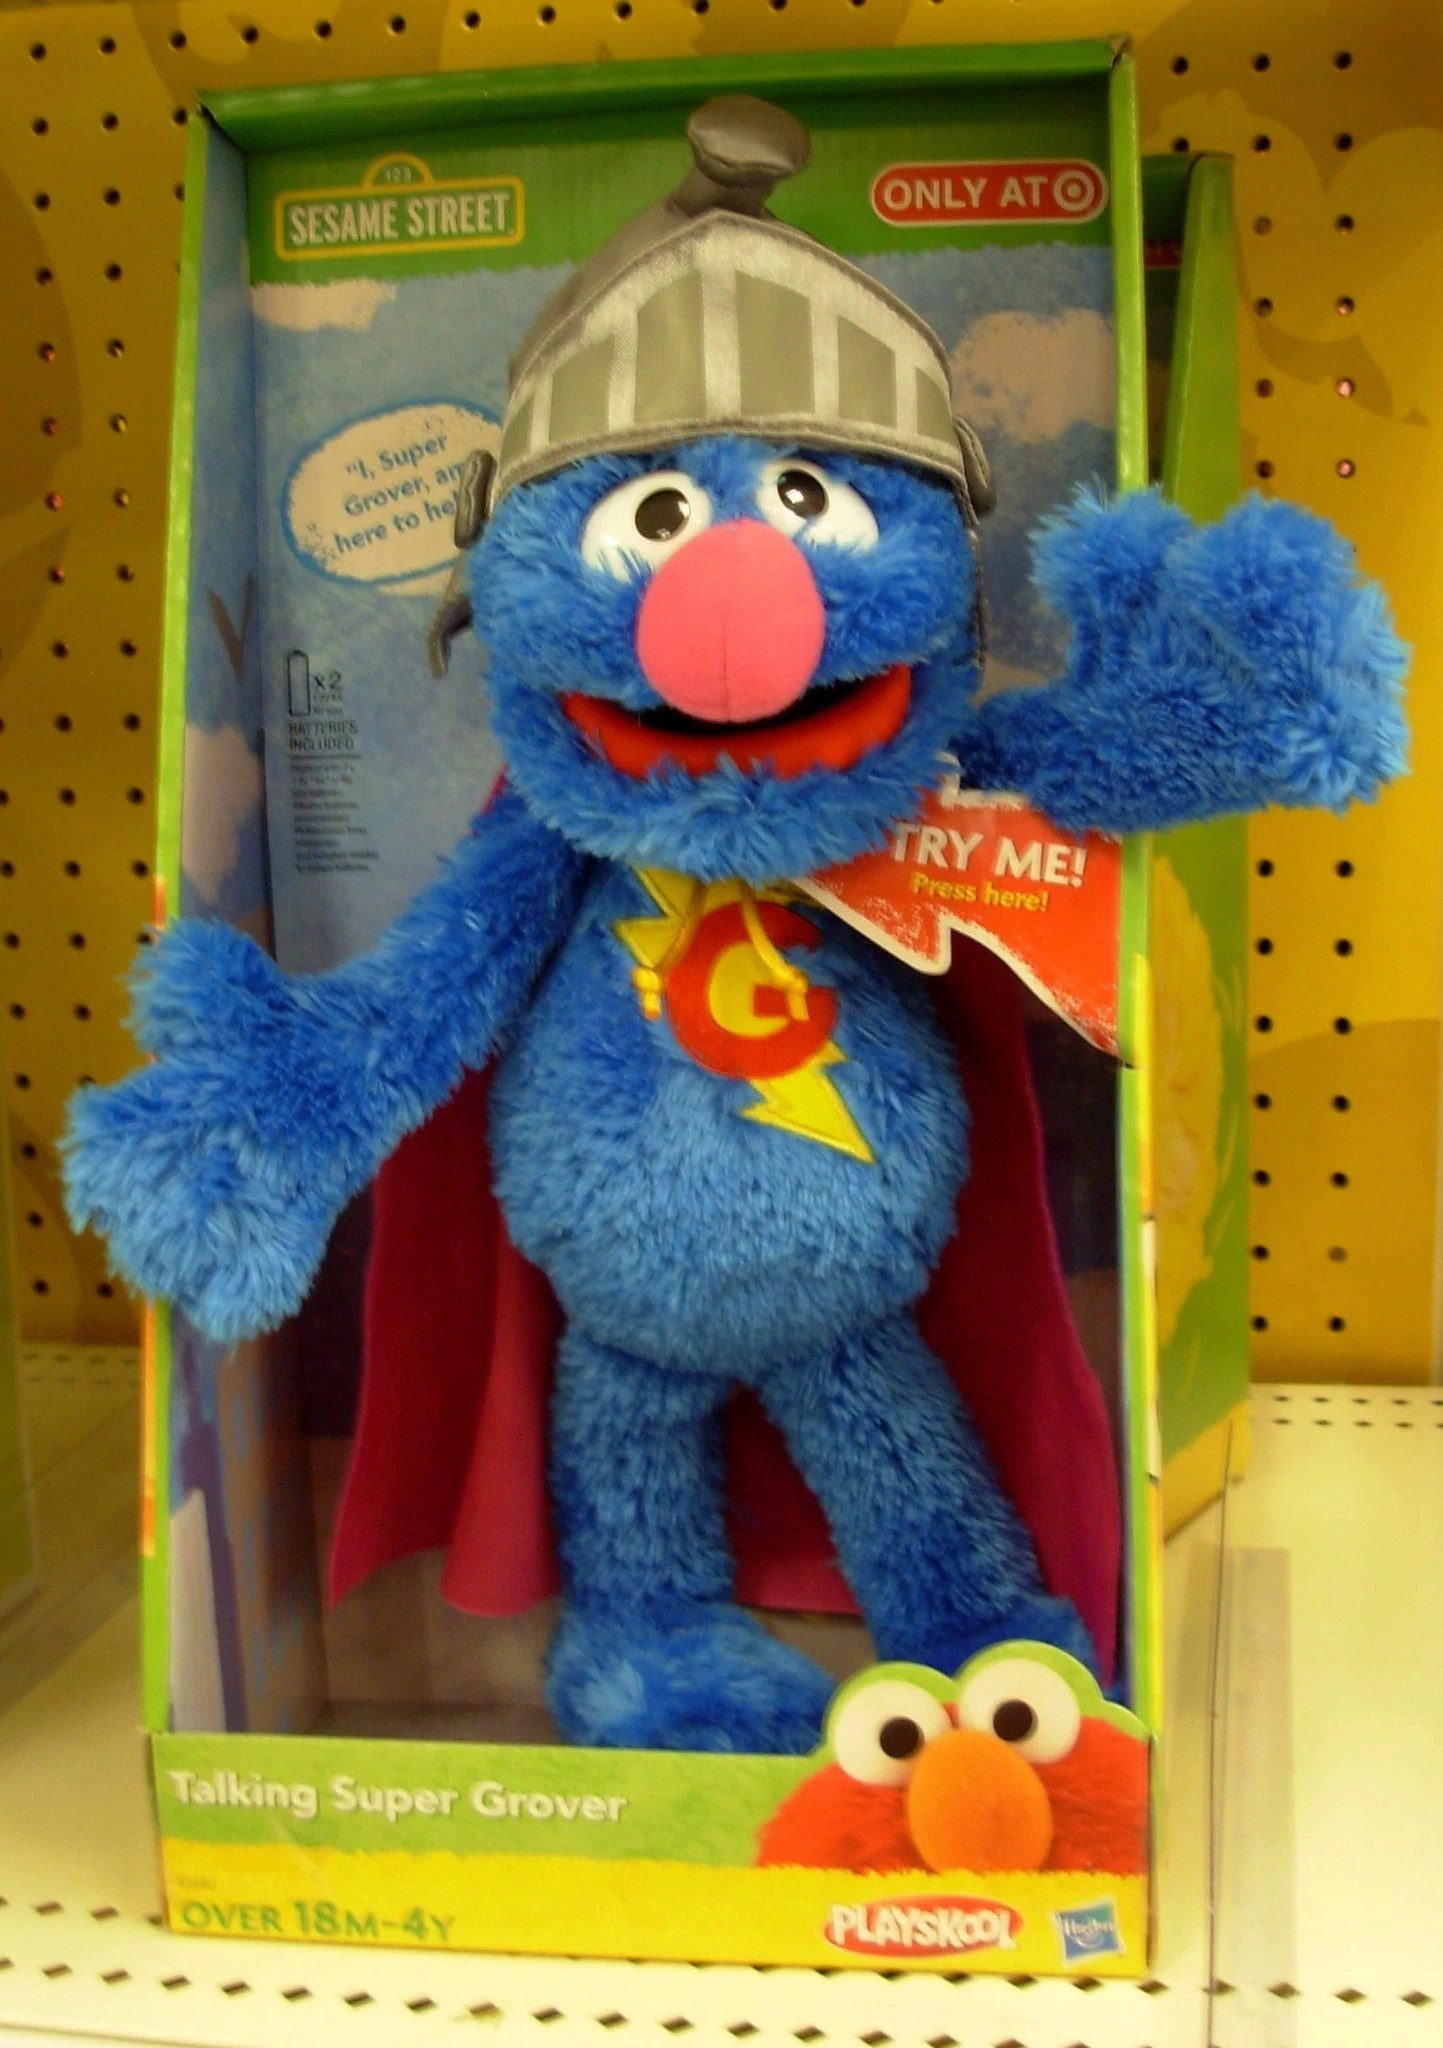 Sesame Street Toys : New sesame street hasbro toys now available the muppet